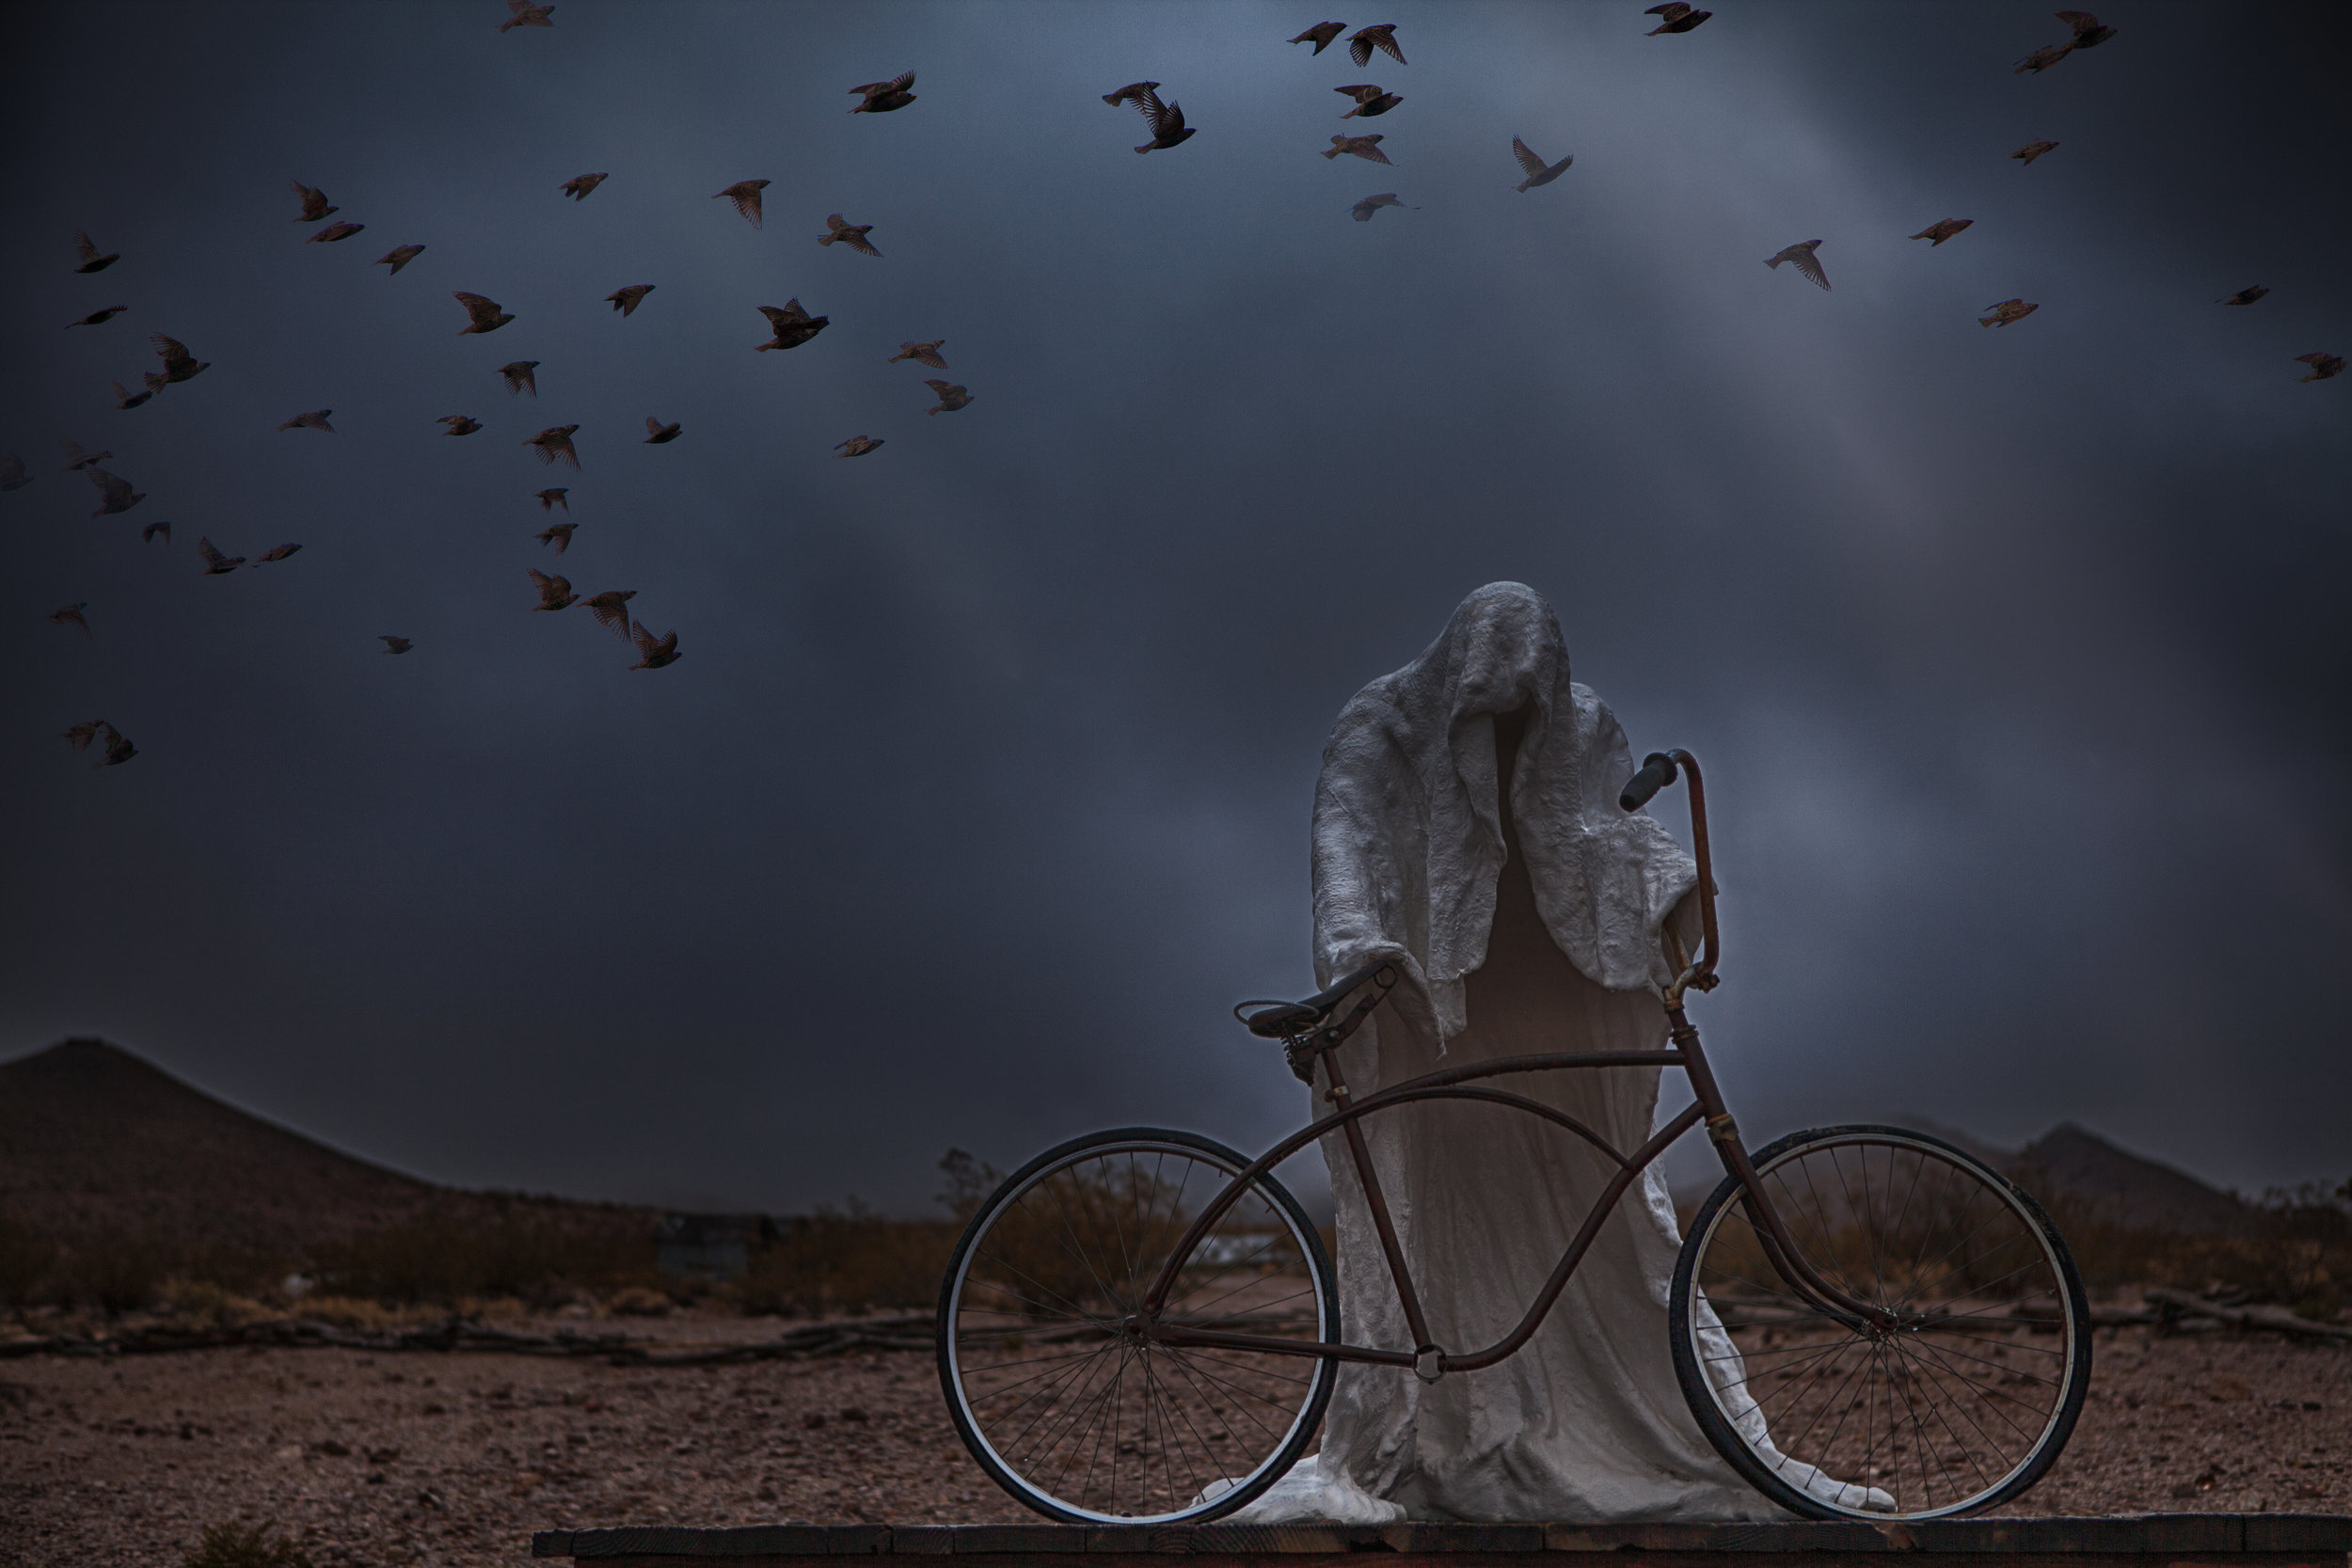 Reaper Ride, a dark and foreboding composite image won COPS 2015 photo of the year.